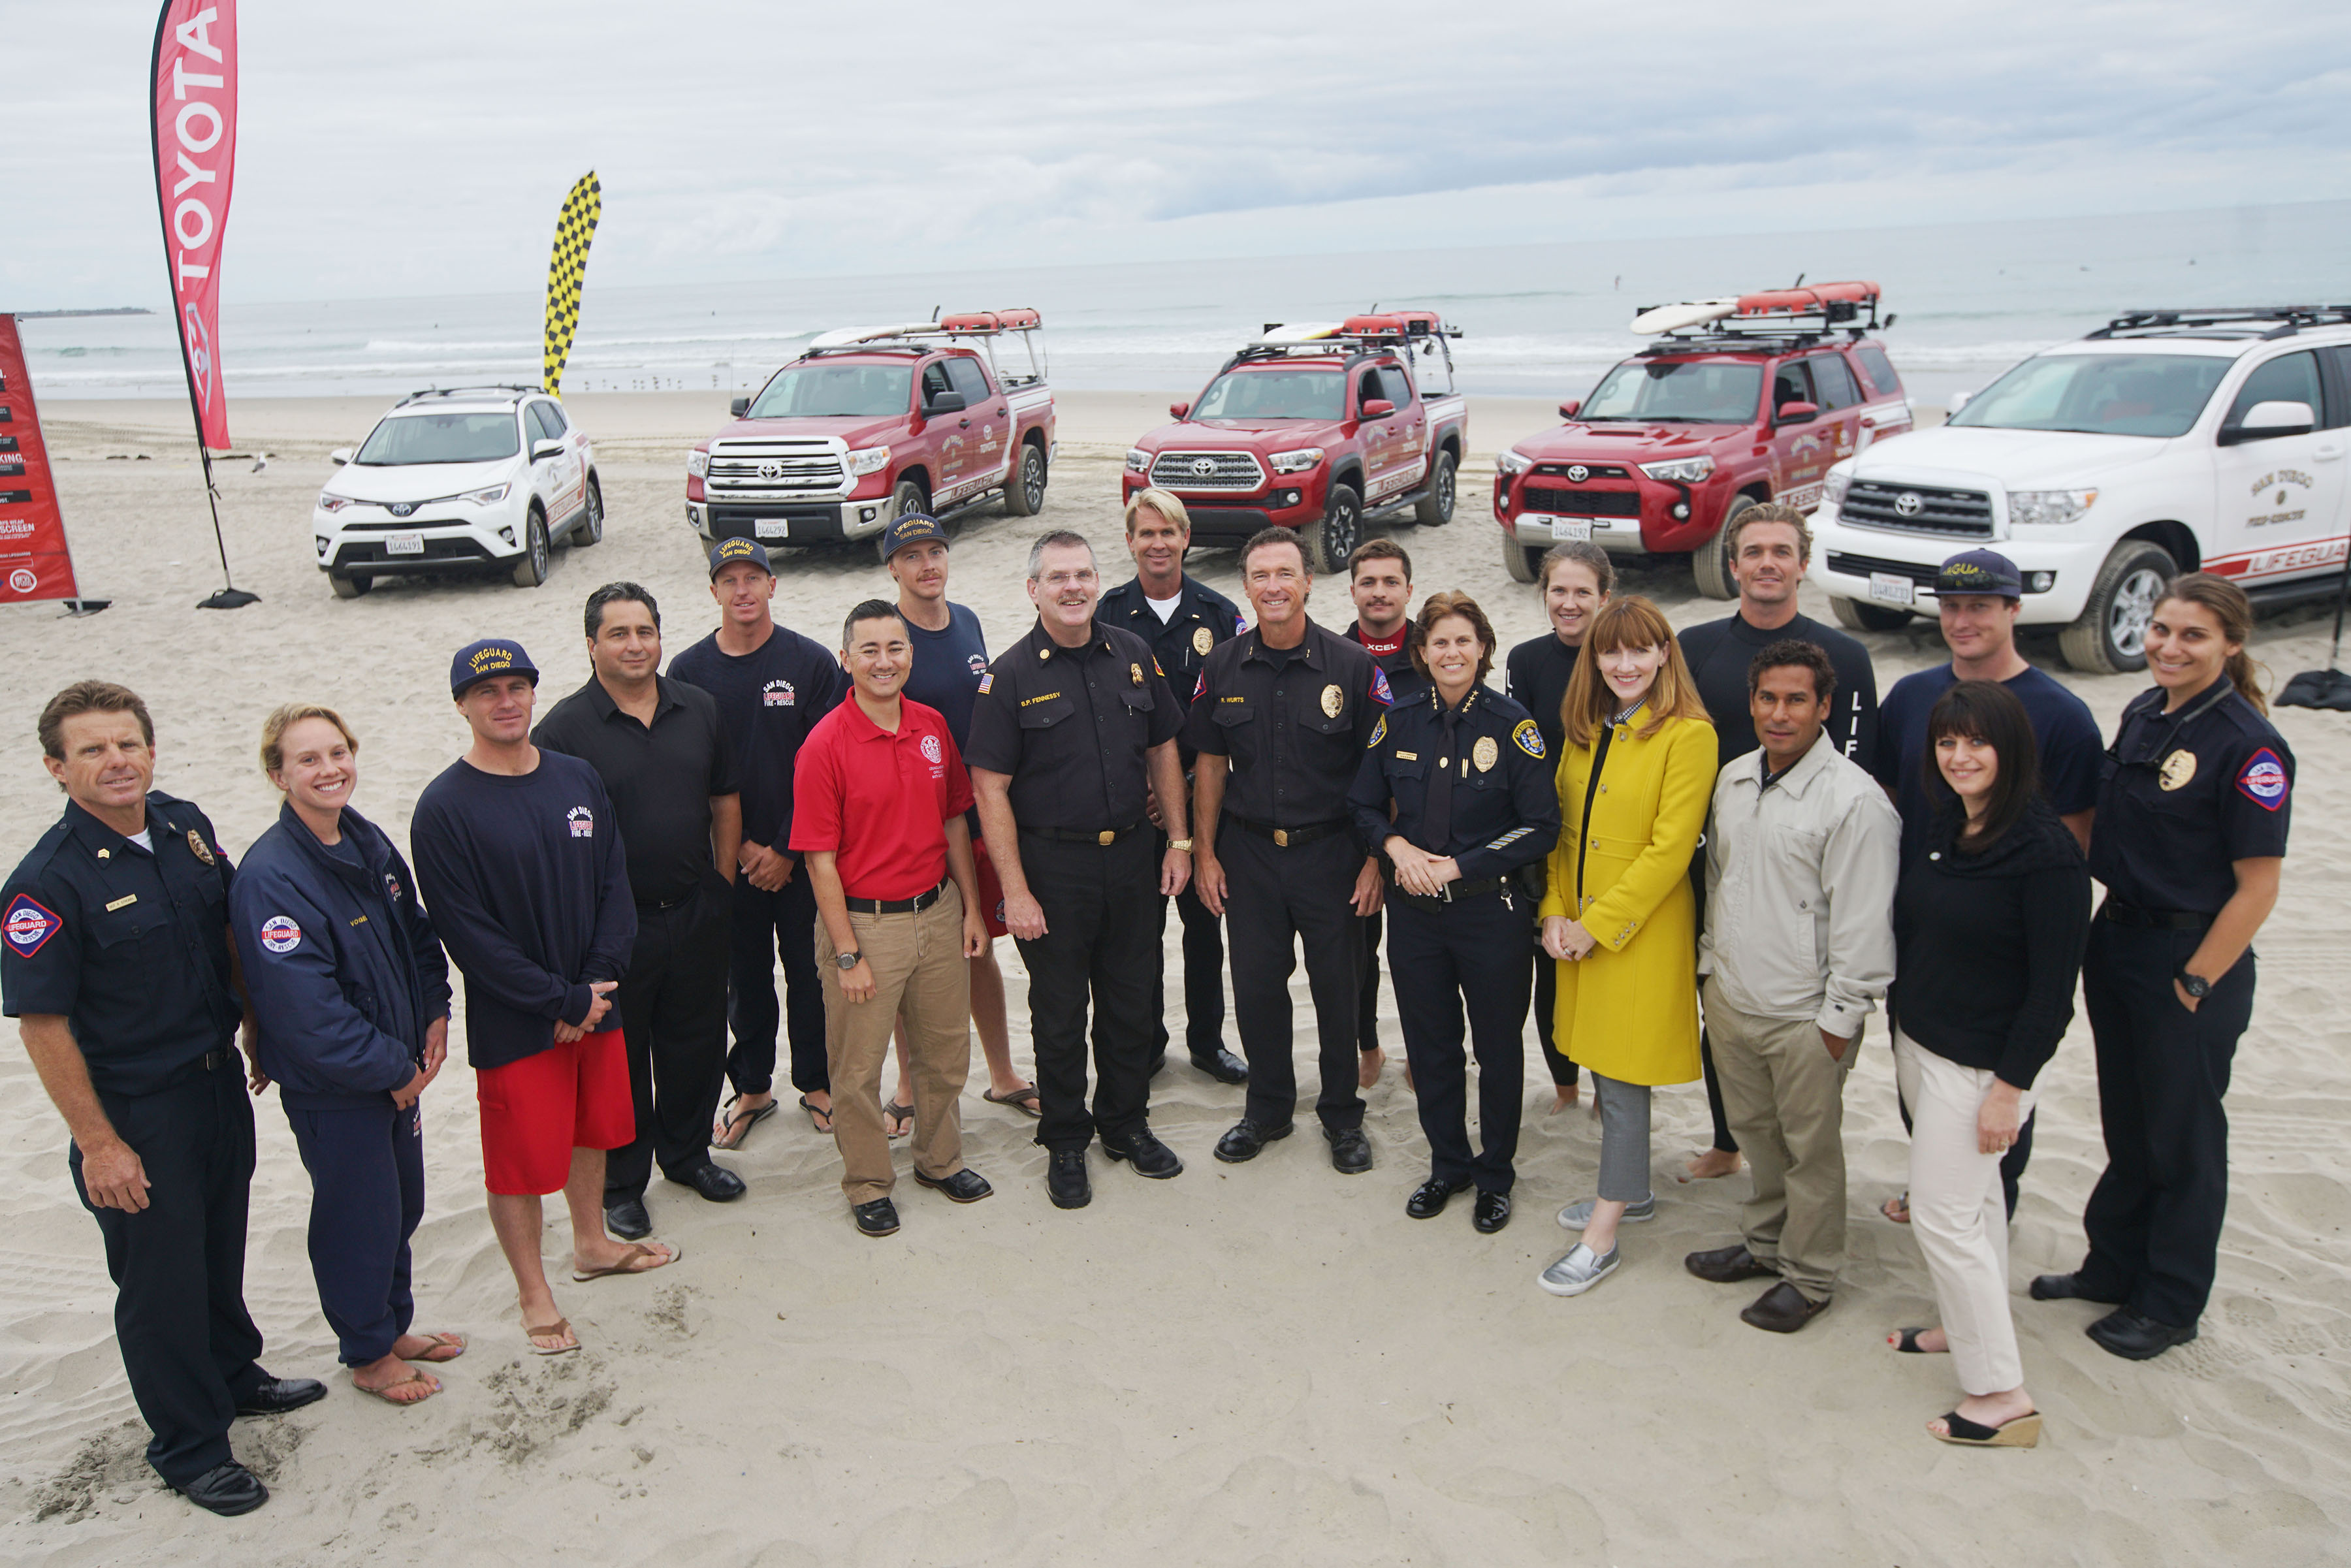 Toyota Celebrates The Sand, Surf & Safety of San Diego's